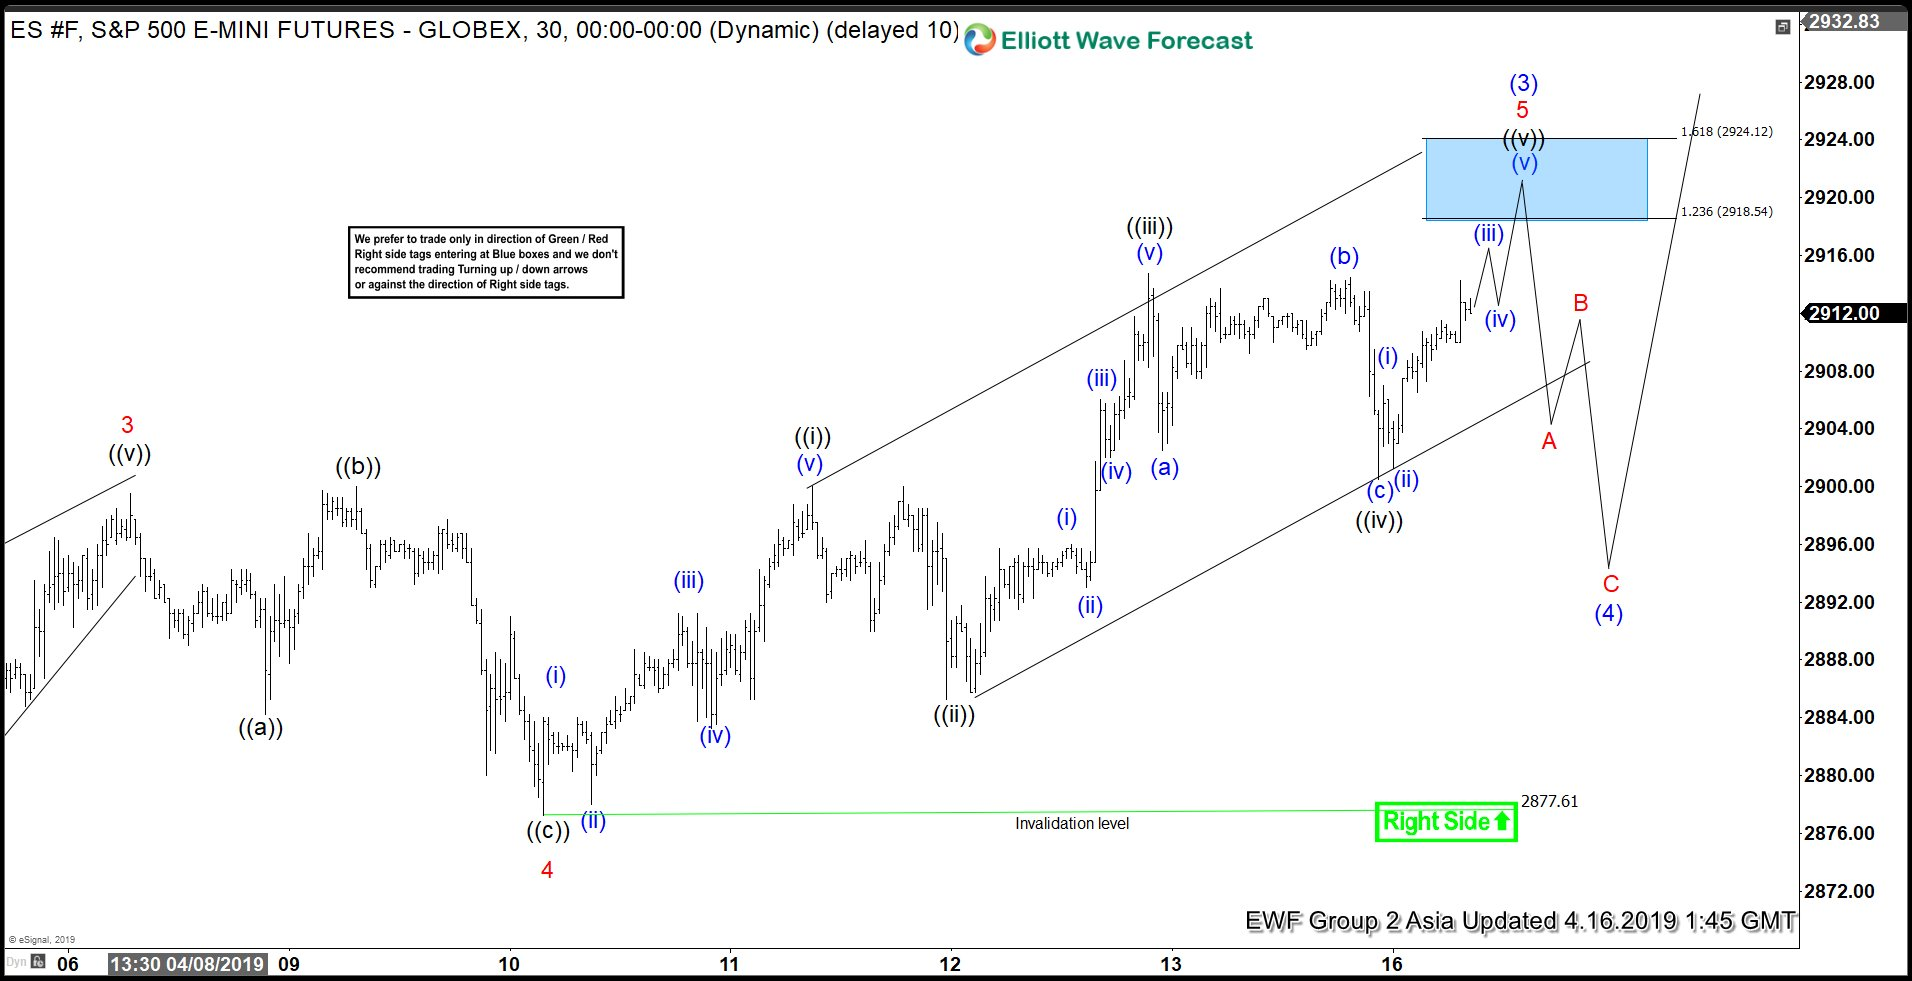 Elliott Wave View: S&P 500 Futures Eyeing New All-Time High